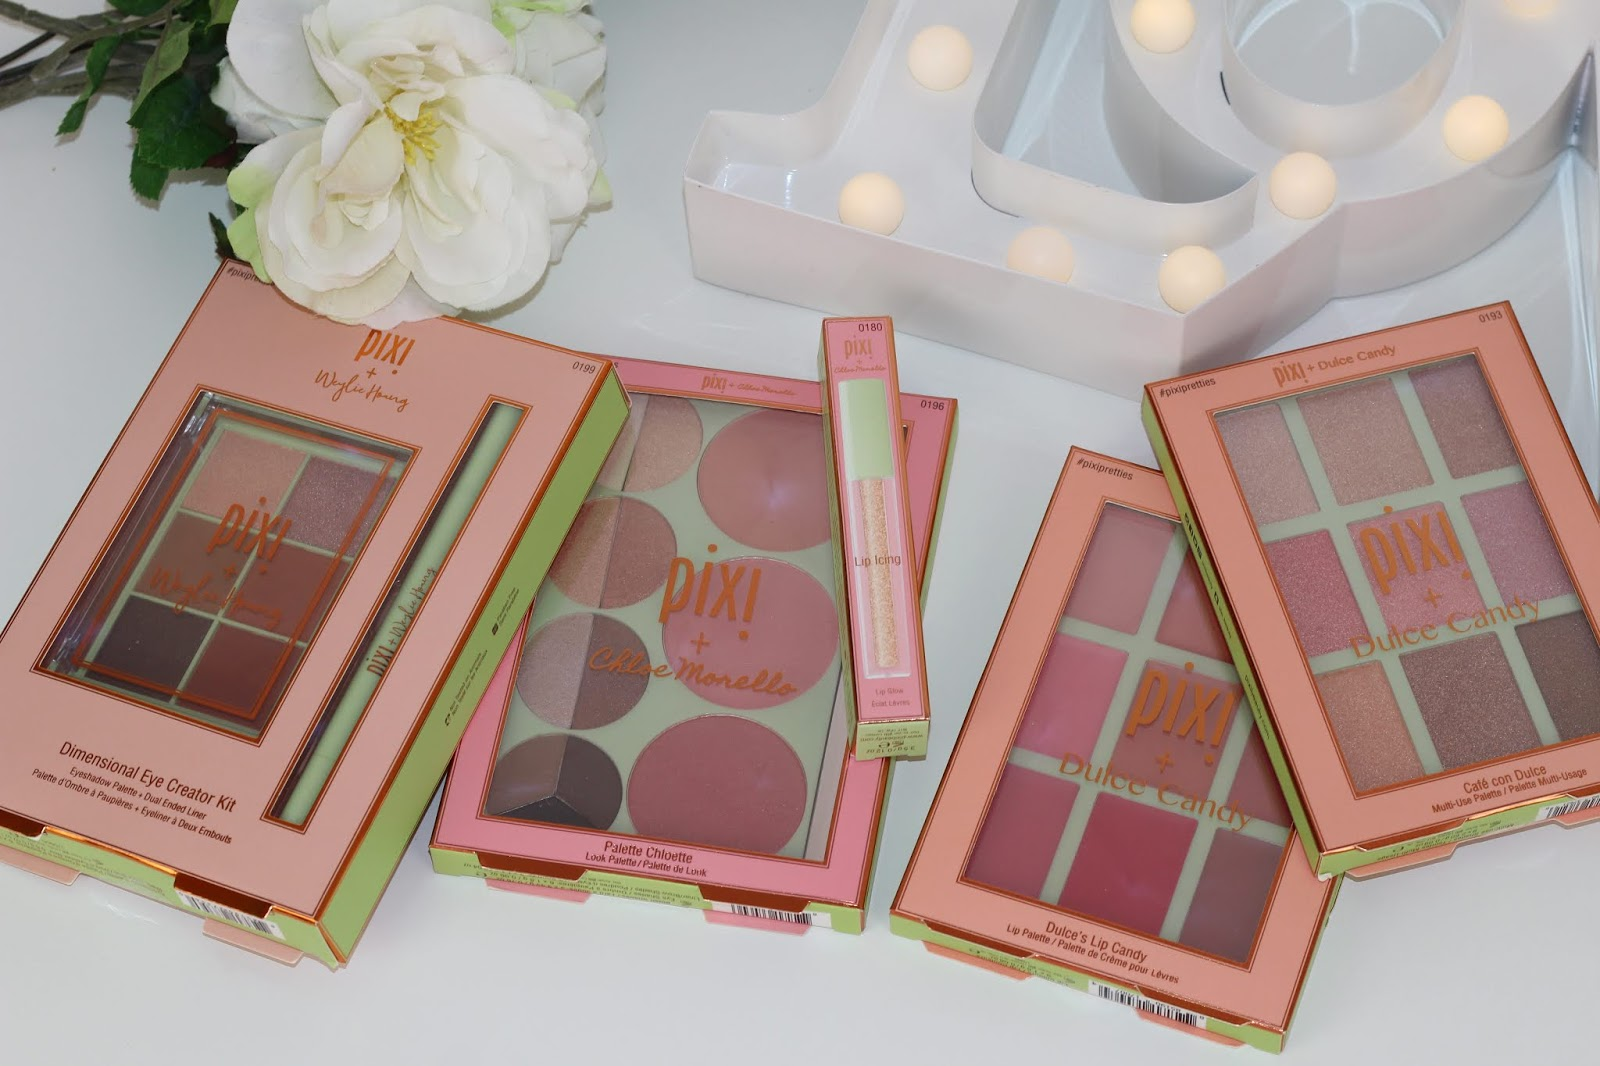 Pixi Pretties Review 2018 - Chloe Morello, Dulce and Weylie